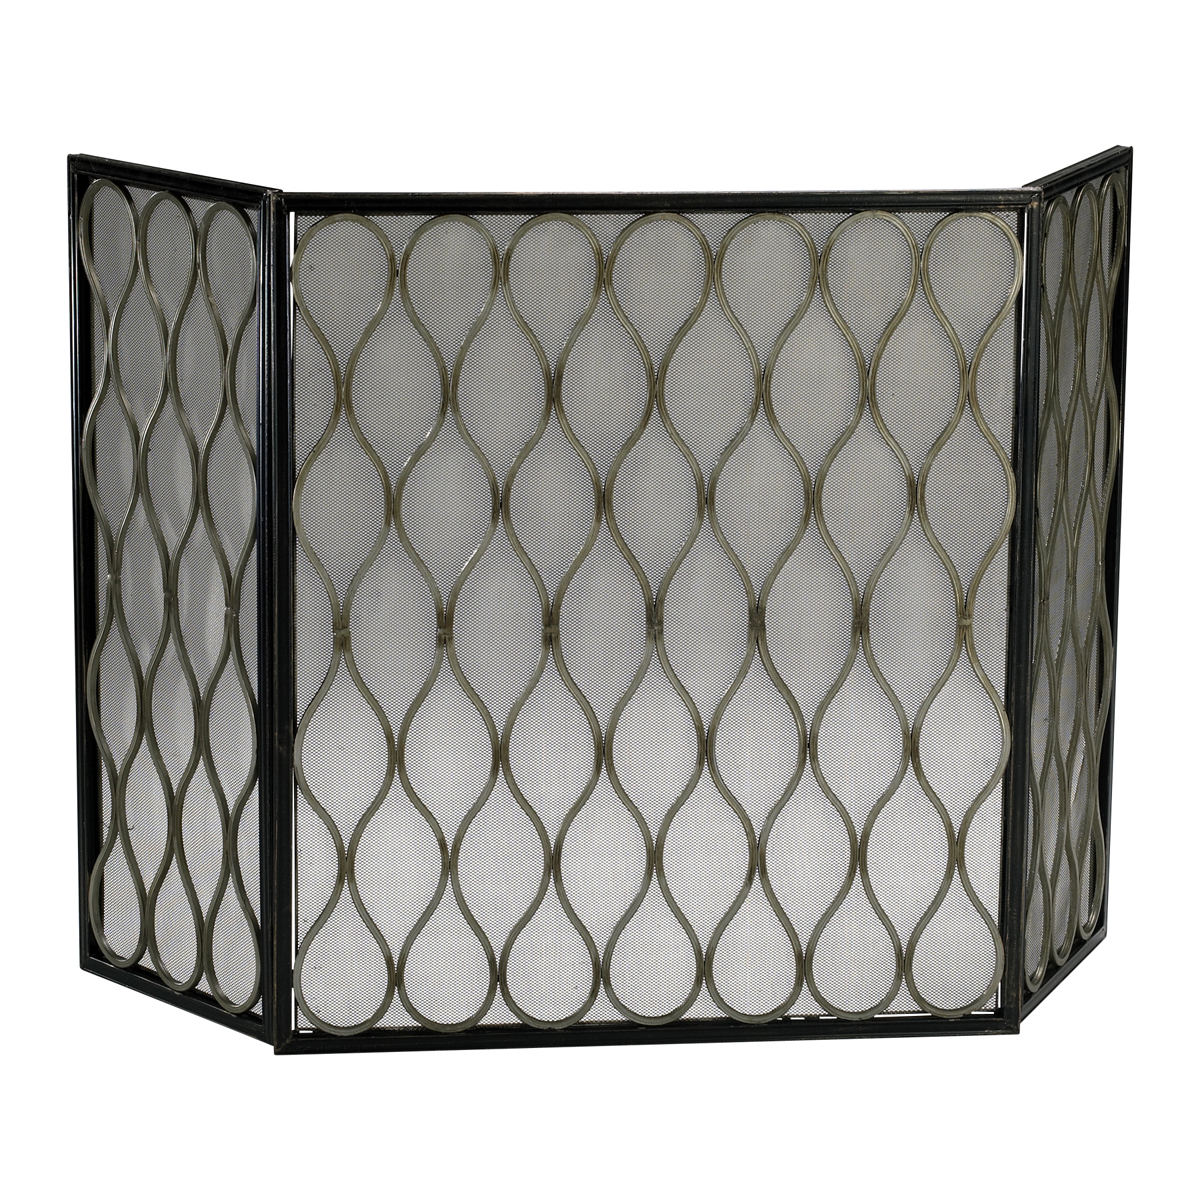 Fire Screens- Stained Glass Decorative Fireplace Screens, Iron Fireplace  Screens - Fire Screens- Stained Glass Decorative Fireplace Screens, Iron